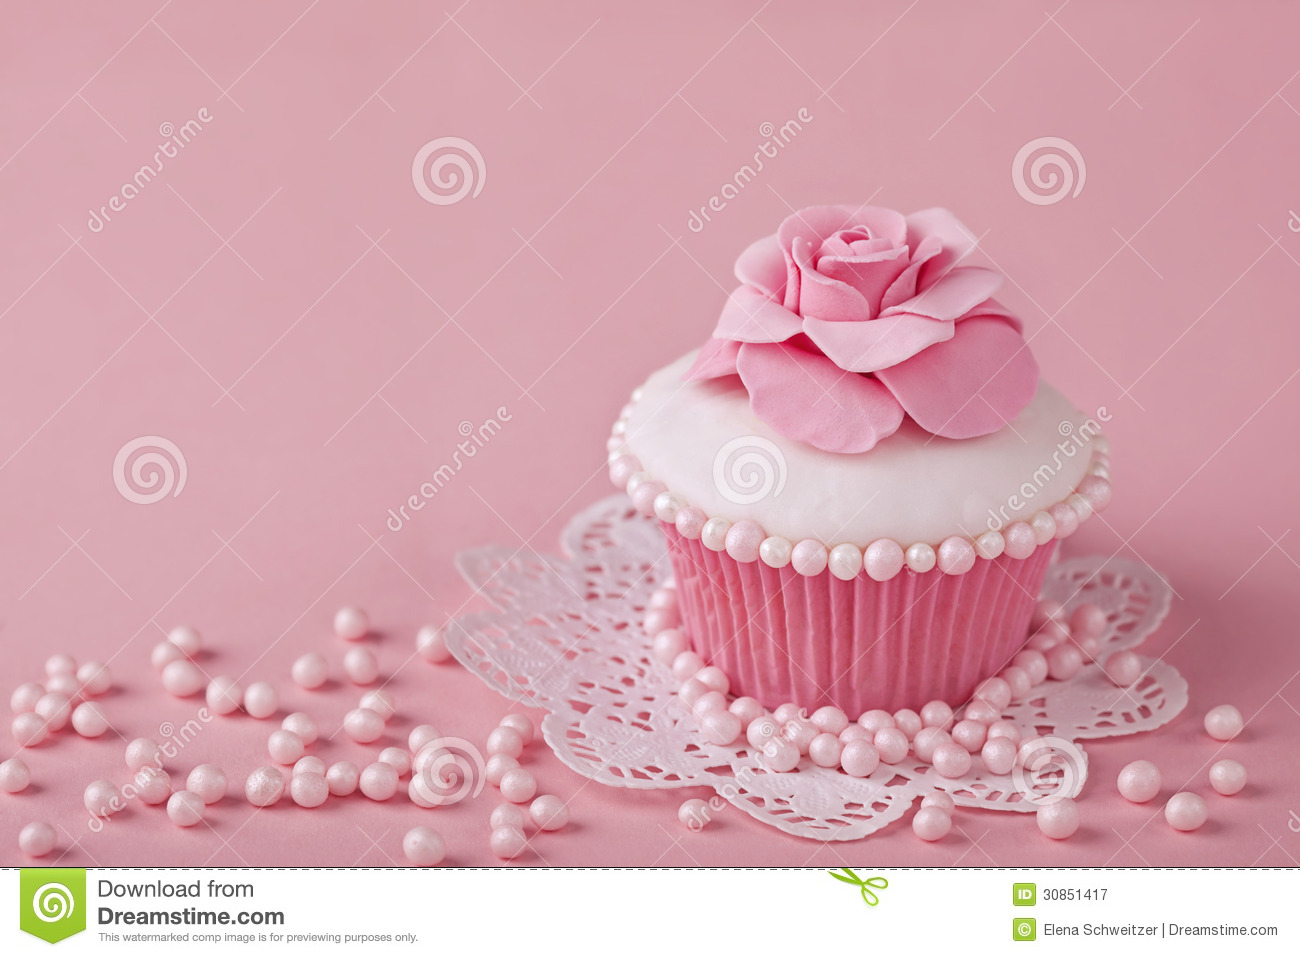 birthday cake wallpaper hd download